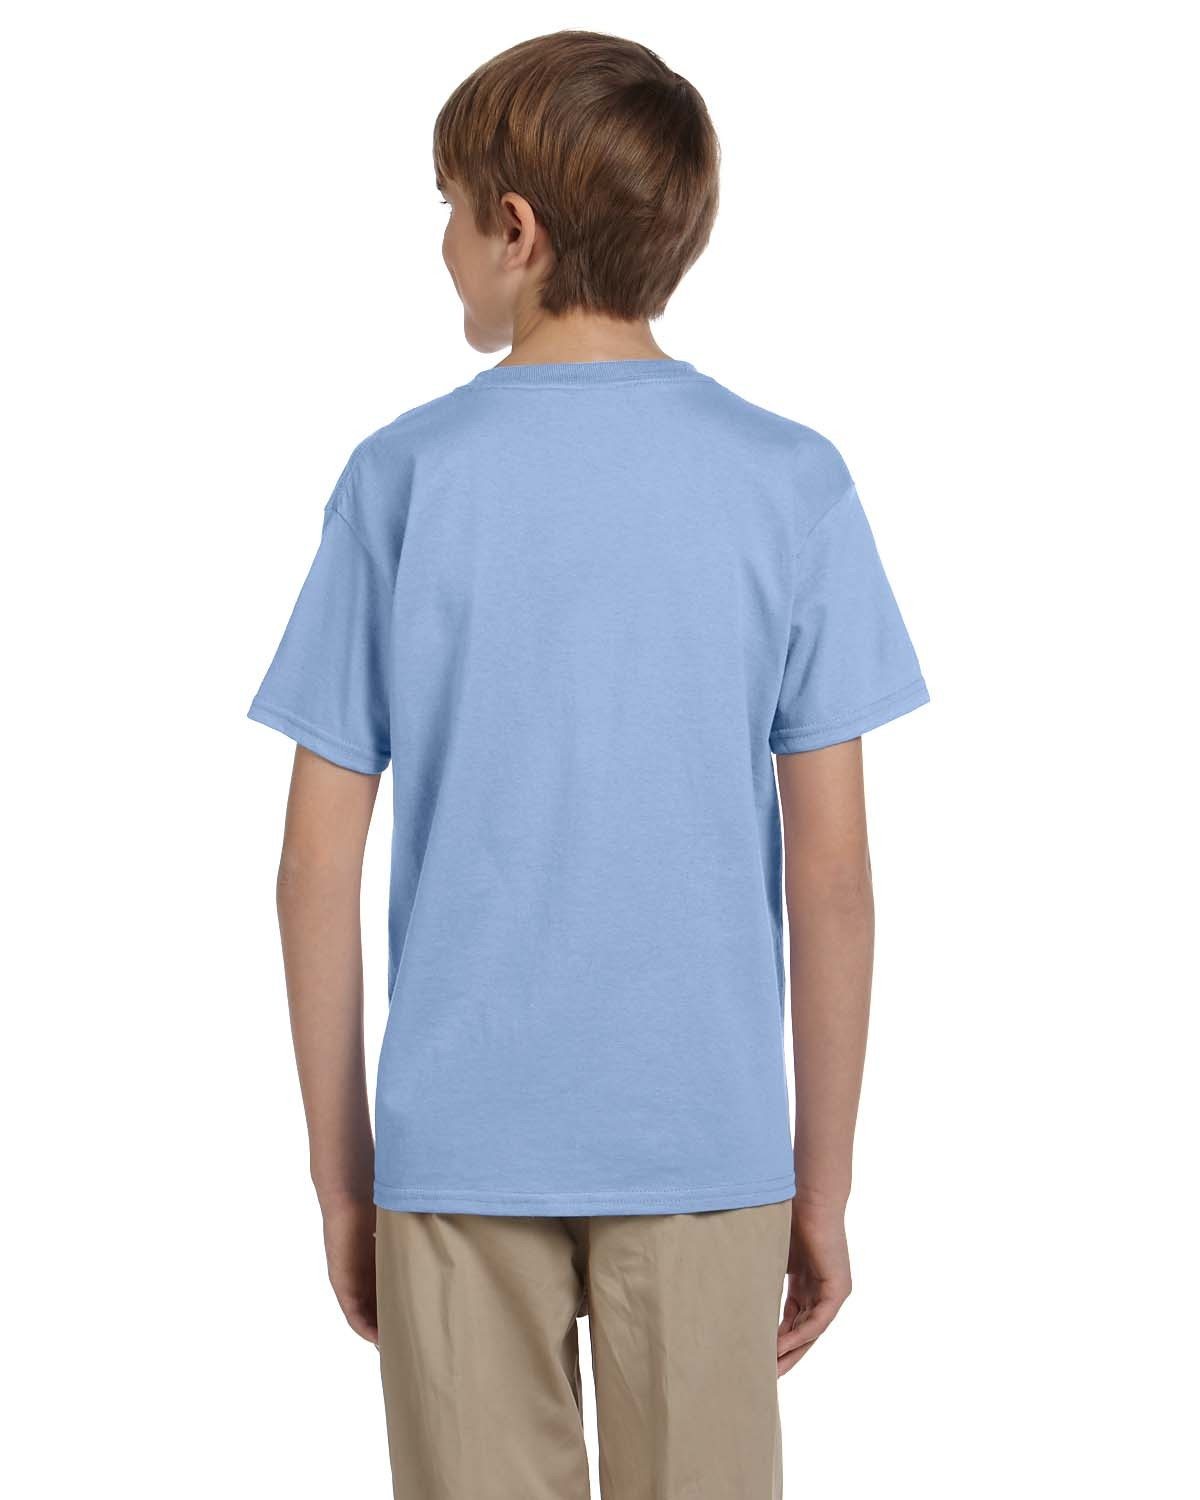 5370 Hanes LIGHT BLUE